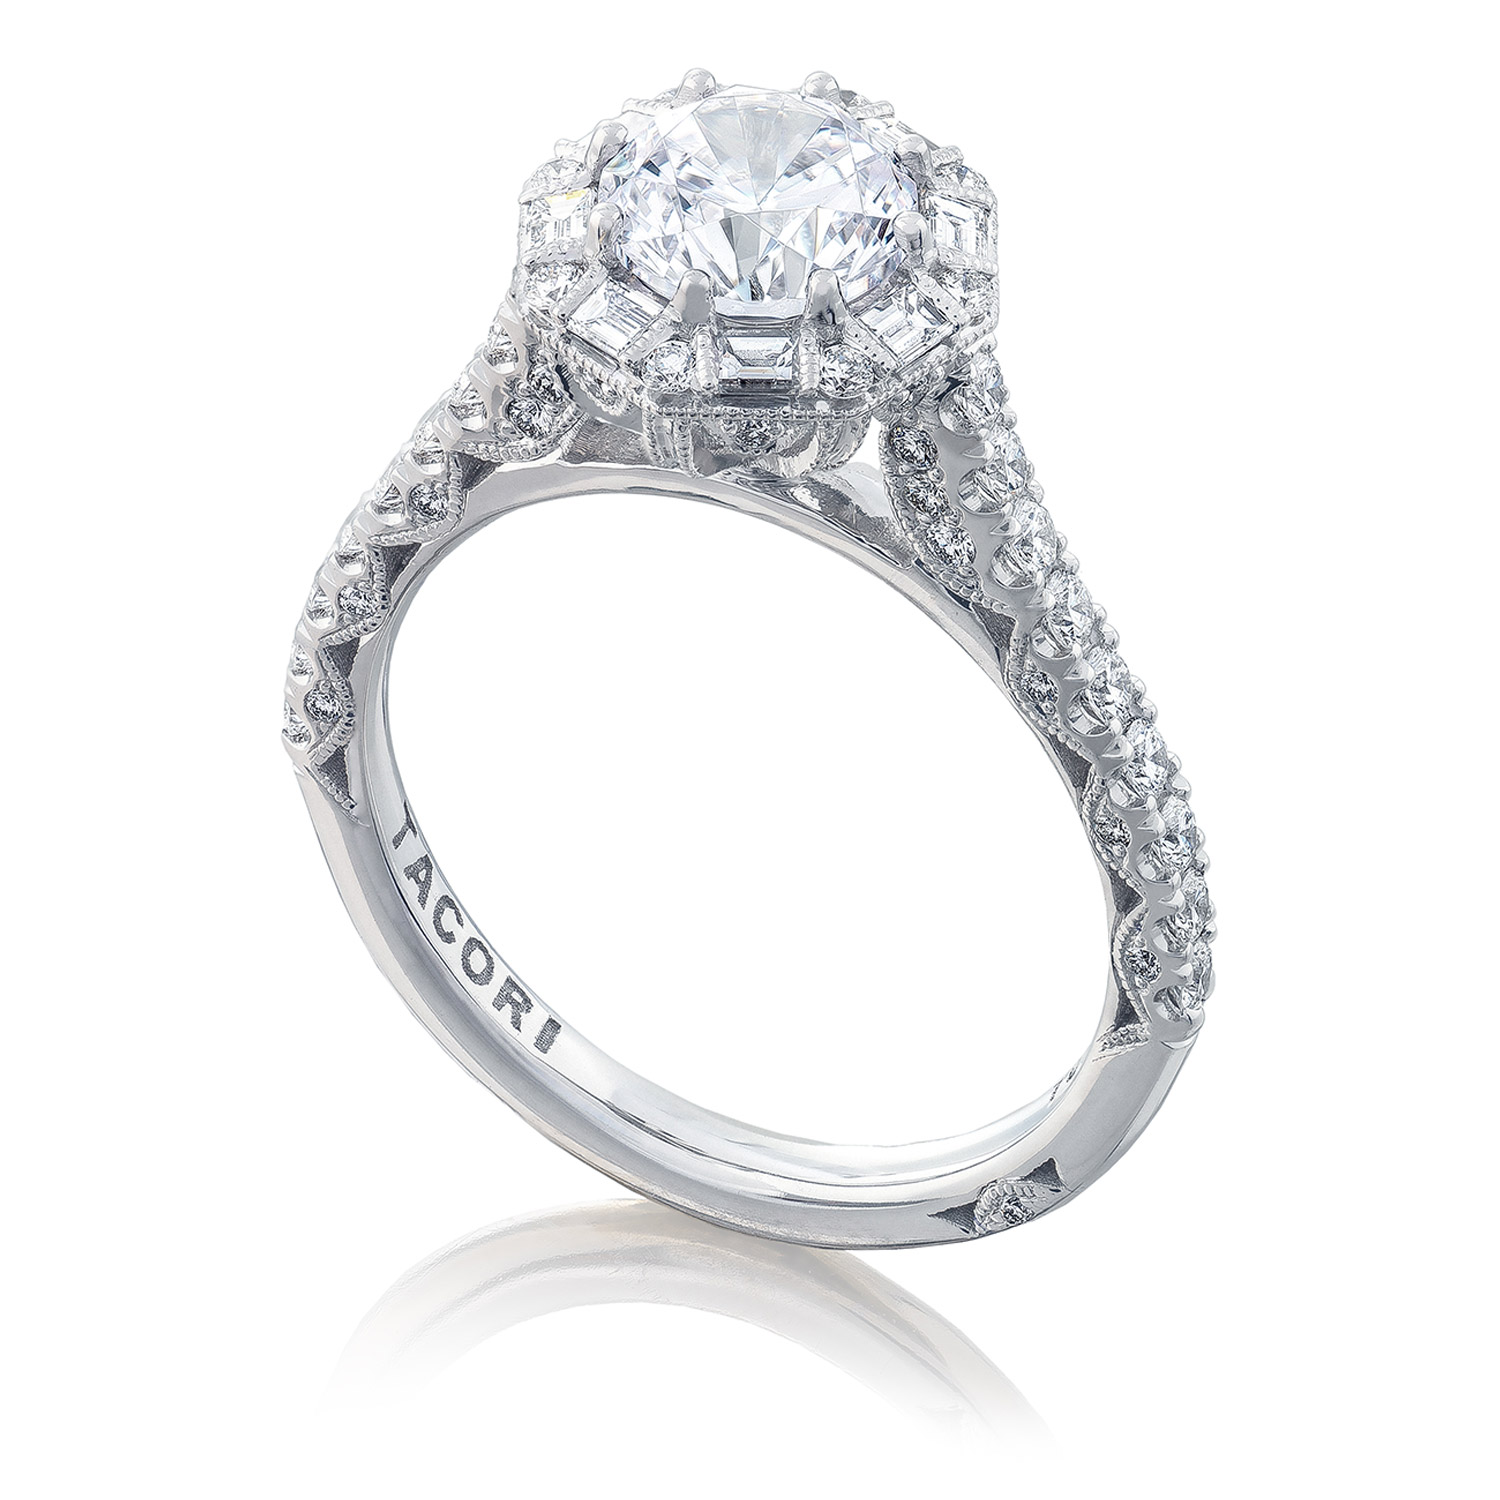 rings baunat ou karat ring in en carat platinum gw diamond design